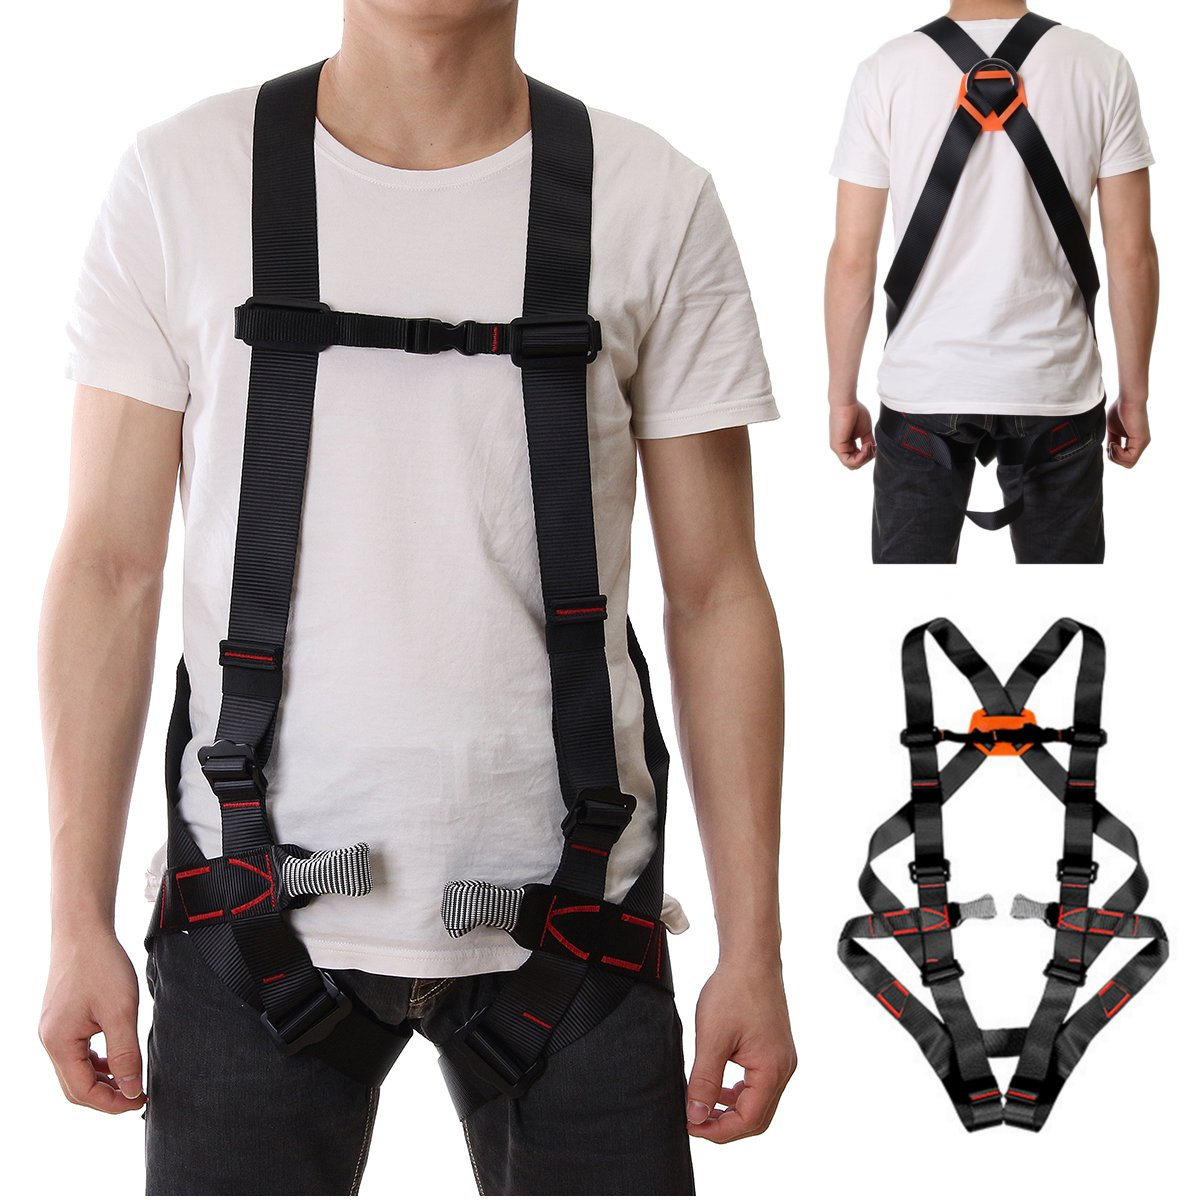 800KG Outdoor Sports Safety Belt Rope Climbing Safety Waist Belt Protection Equipment Safety Harness Body Protecting